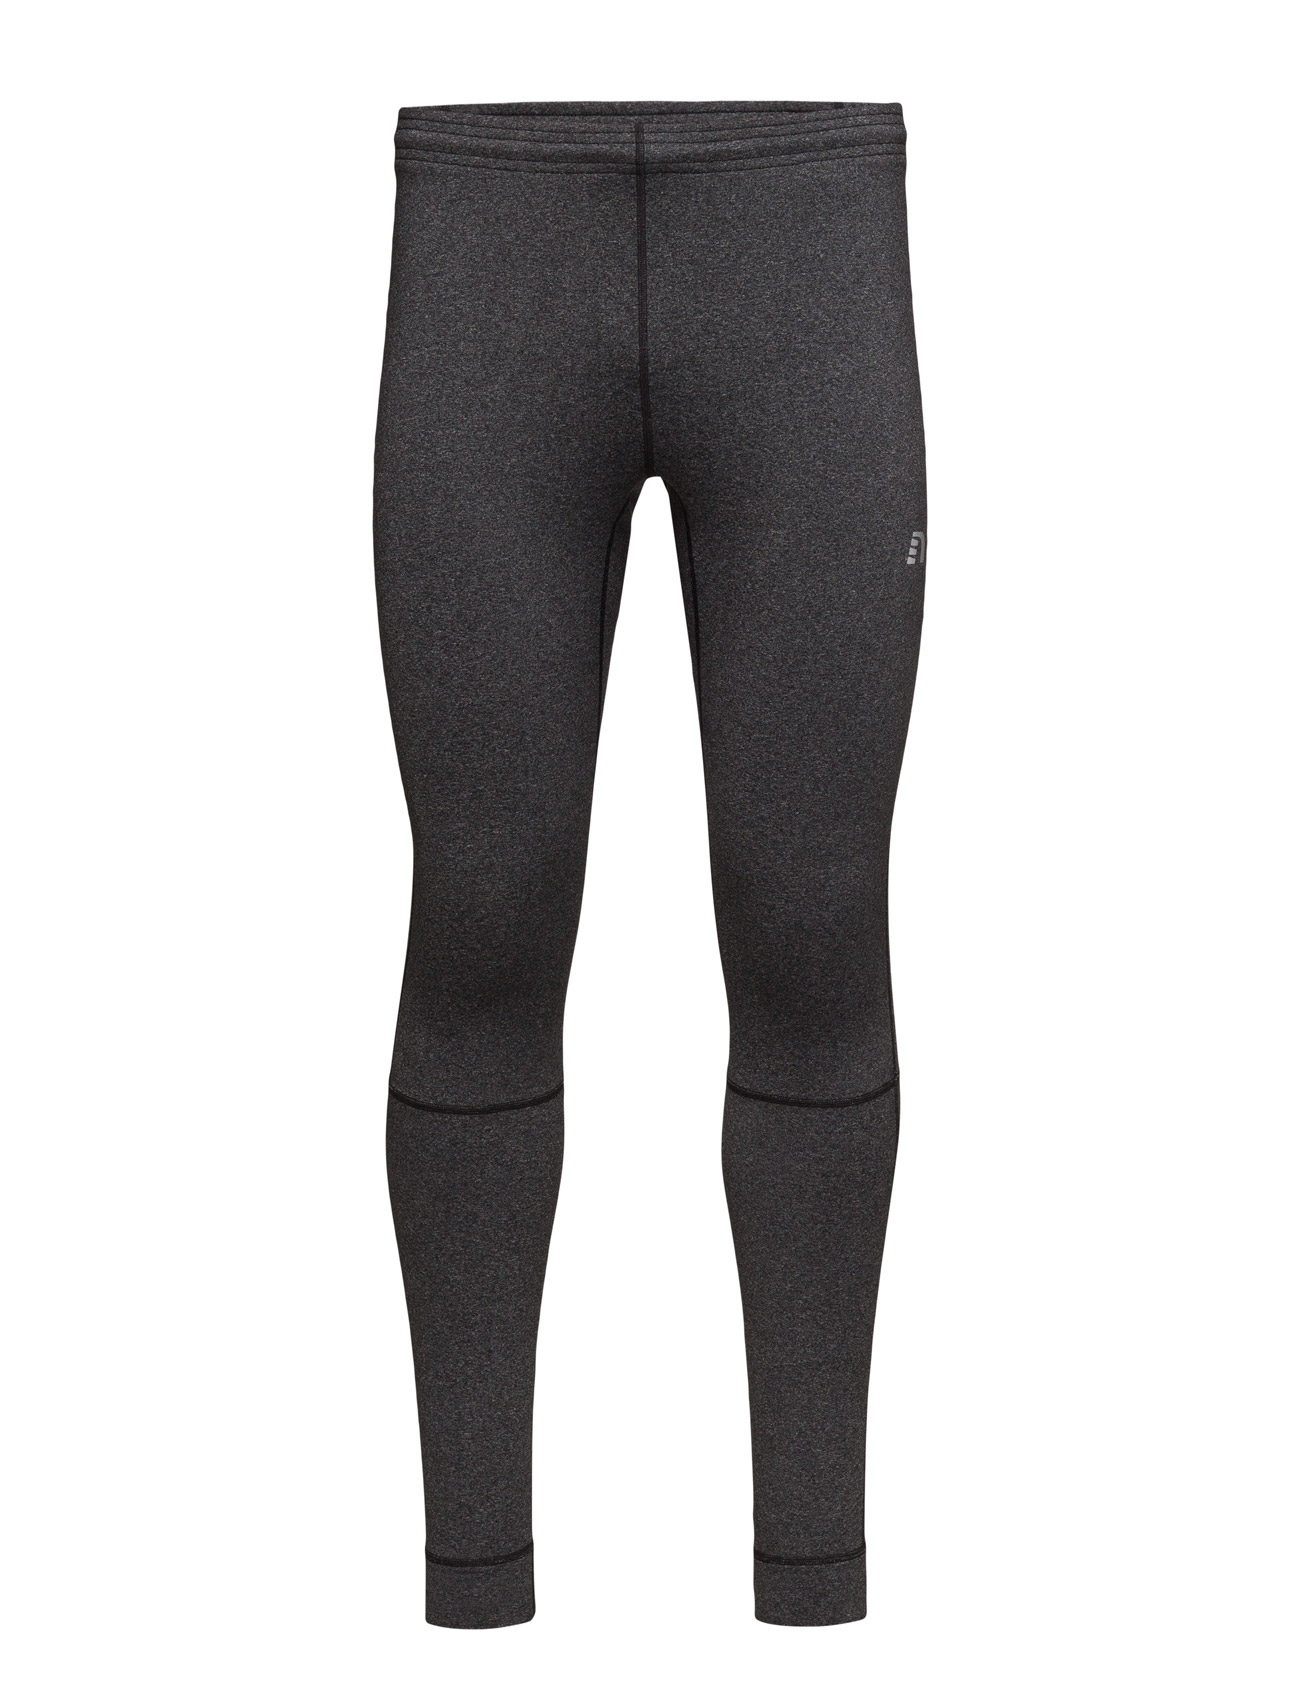 Imotion Heather Warm Tights Newline Løbe tights til Mænd i